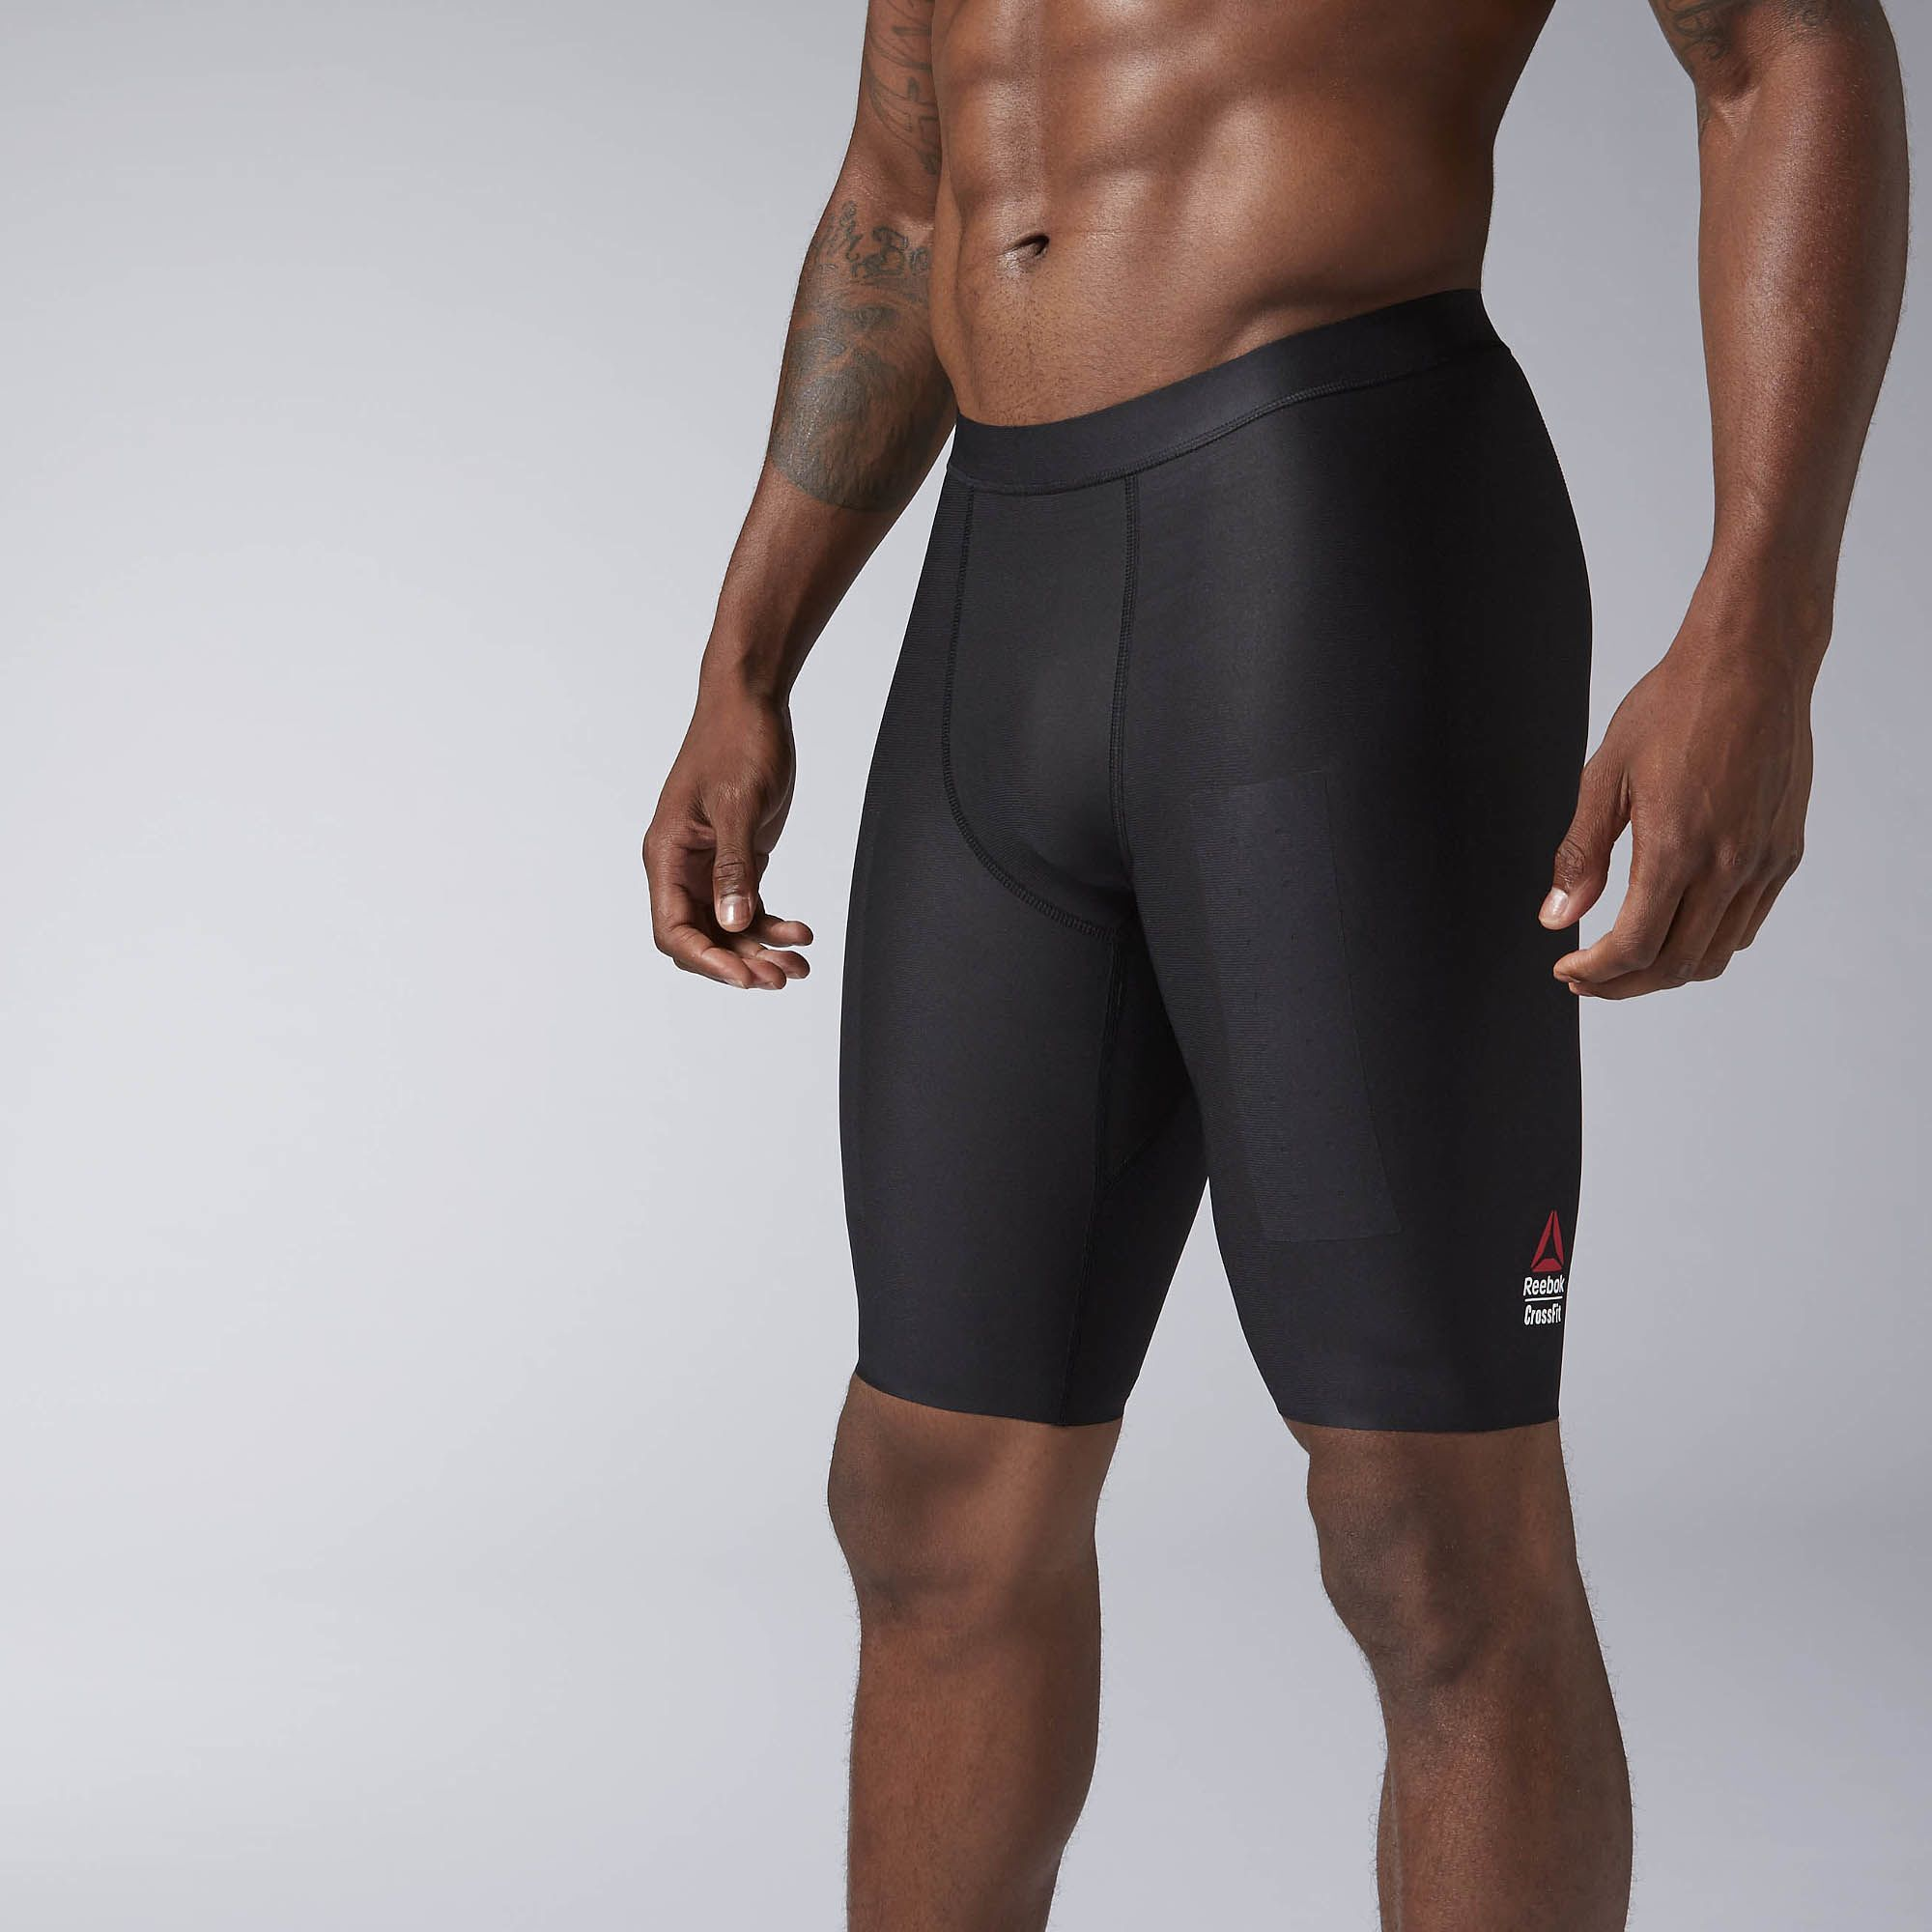 Compression Shorts:  What You Get for the Money